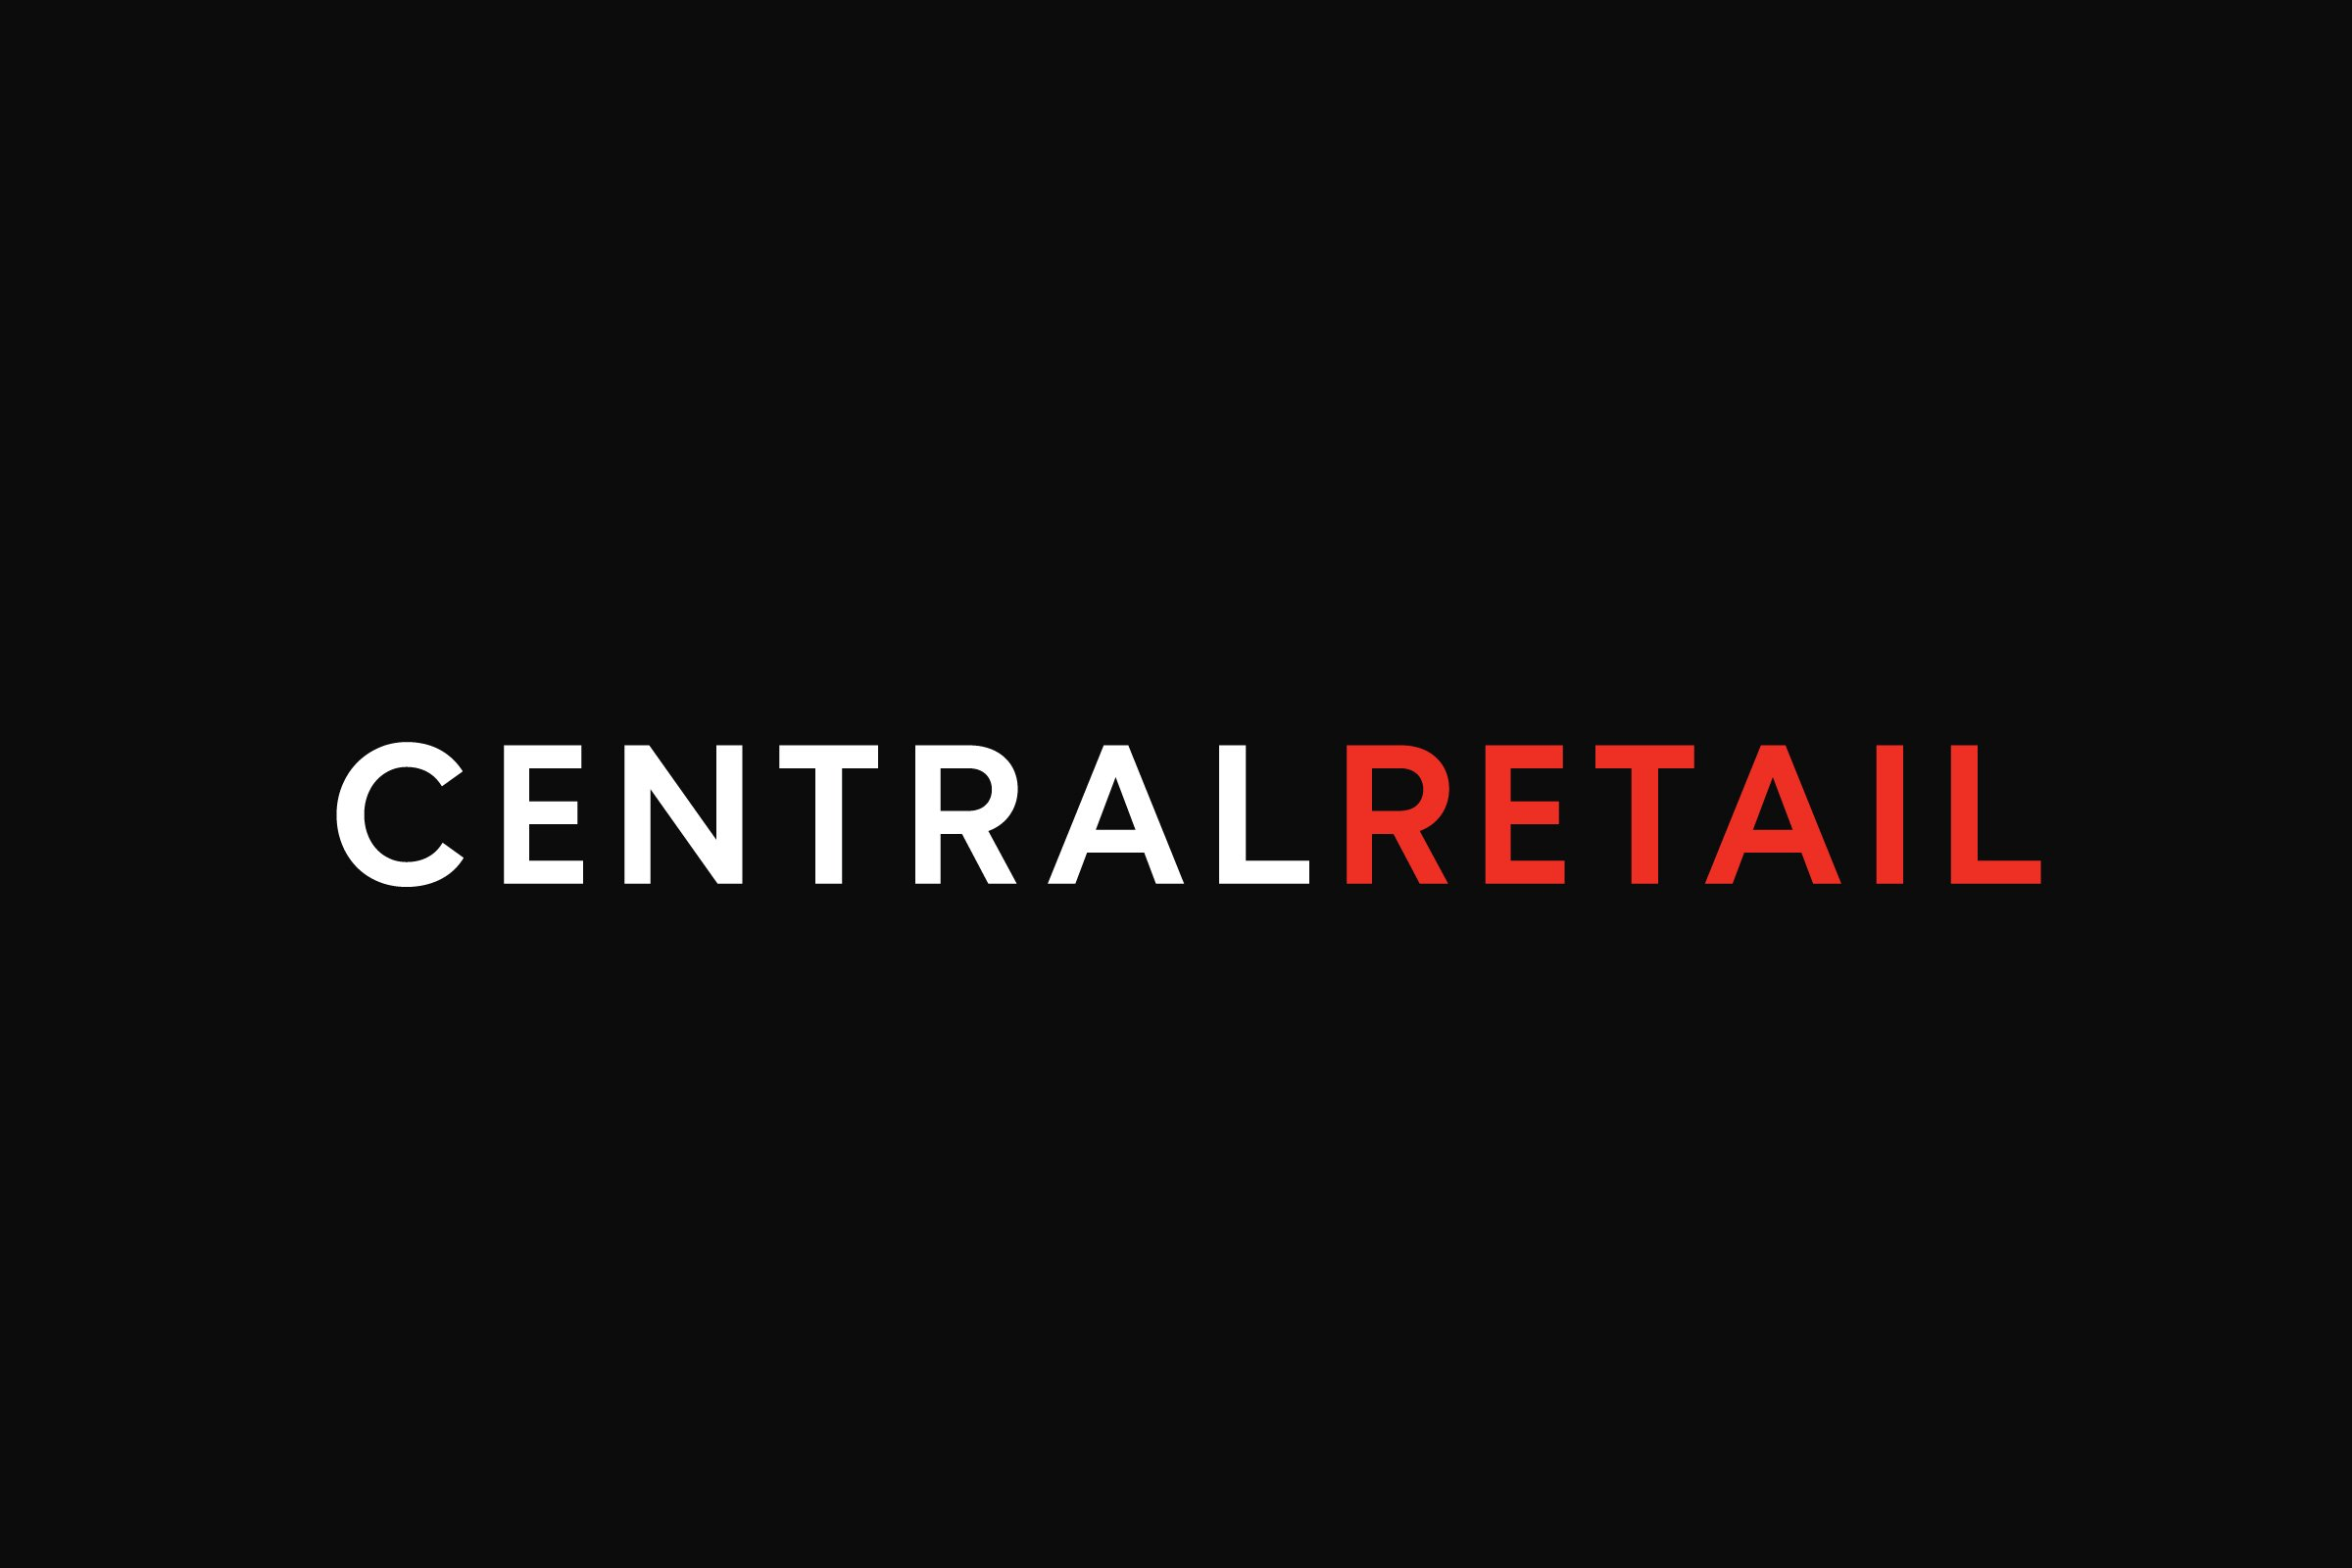 Central Retail